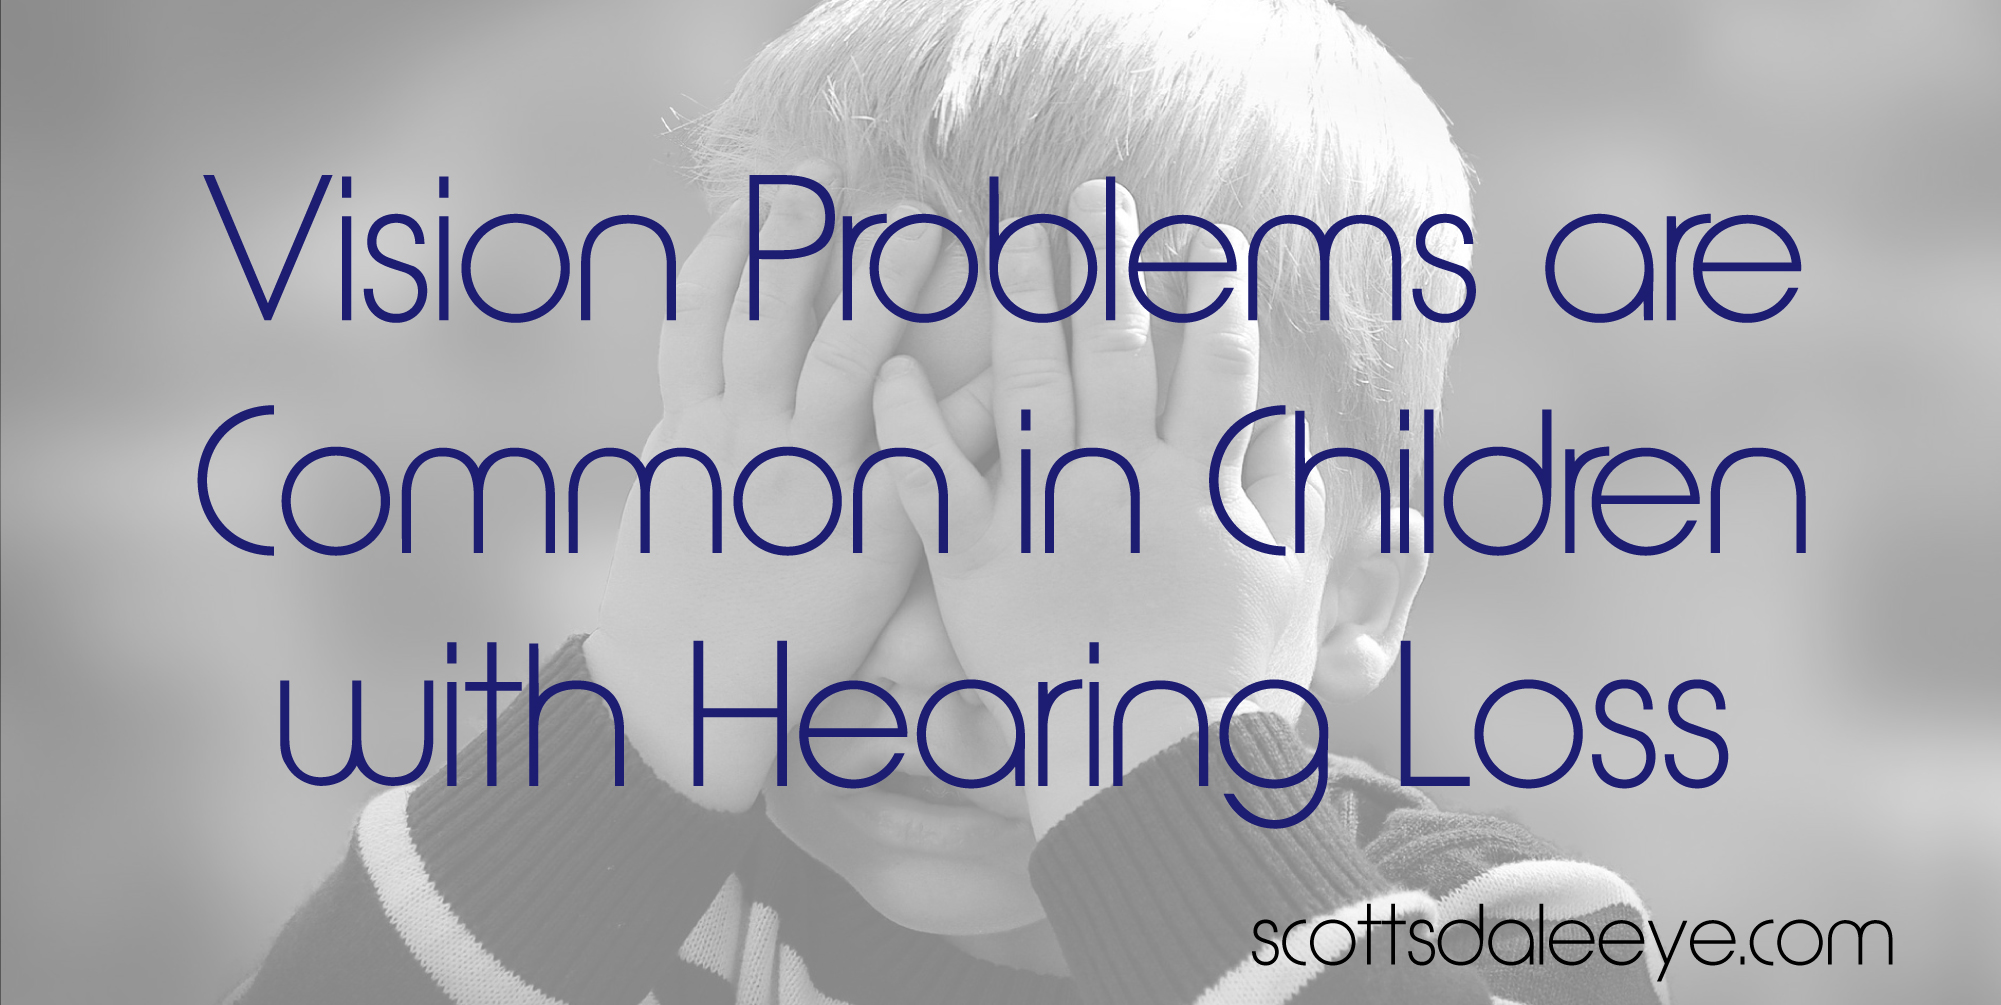 Vision Problems are Common in Children with Hearing Loss